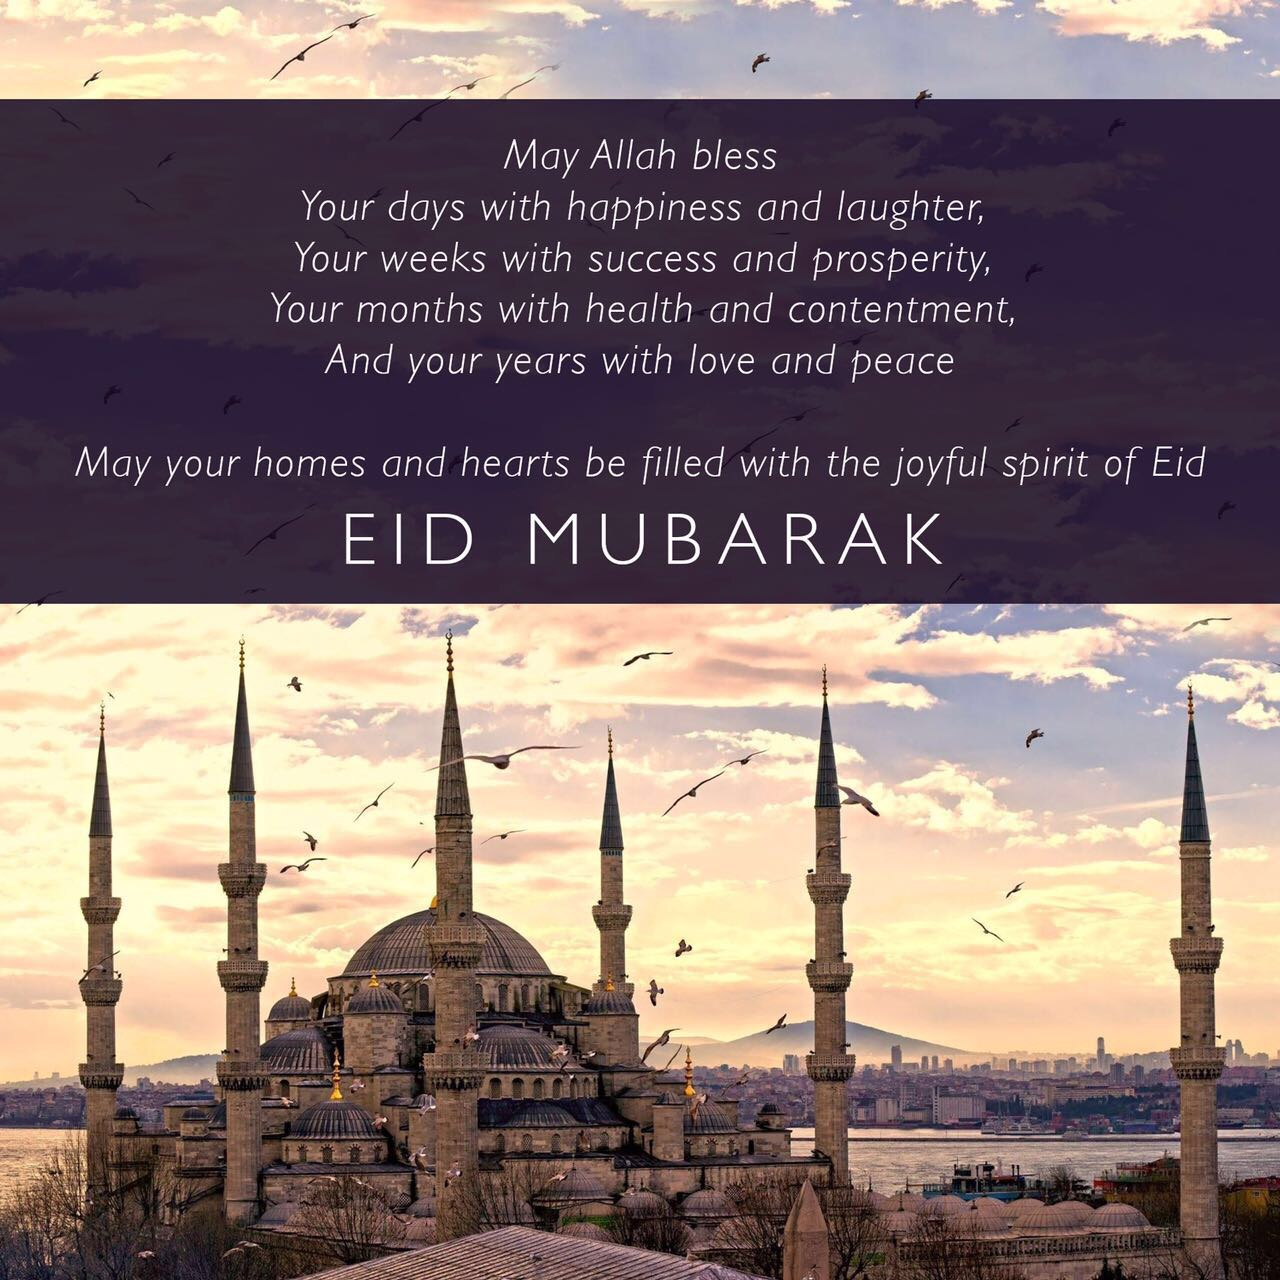 Eid al fitr mubarak the best eid greetings this year inspirere eid mubarak card i cant remember who i received this from but it was a beautiful prayer with a backdrop of one of the worlds most beautiful cities m4hsunfo